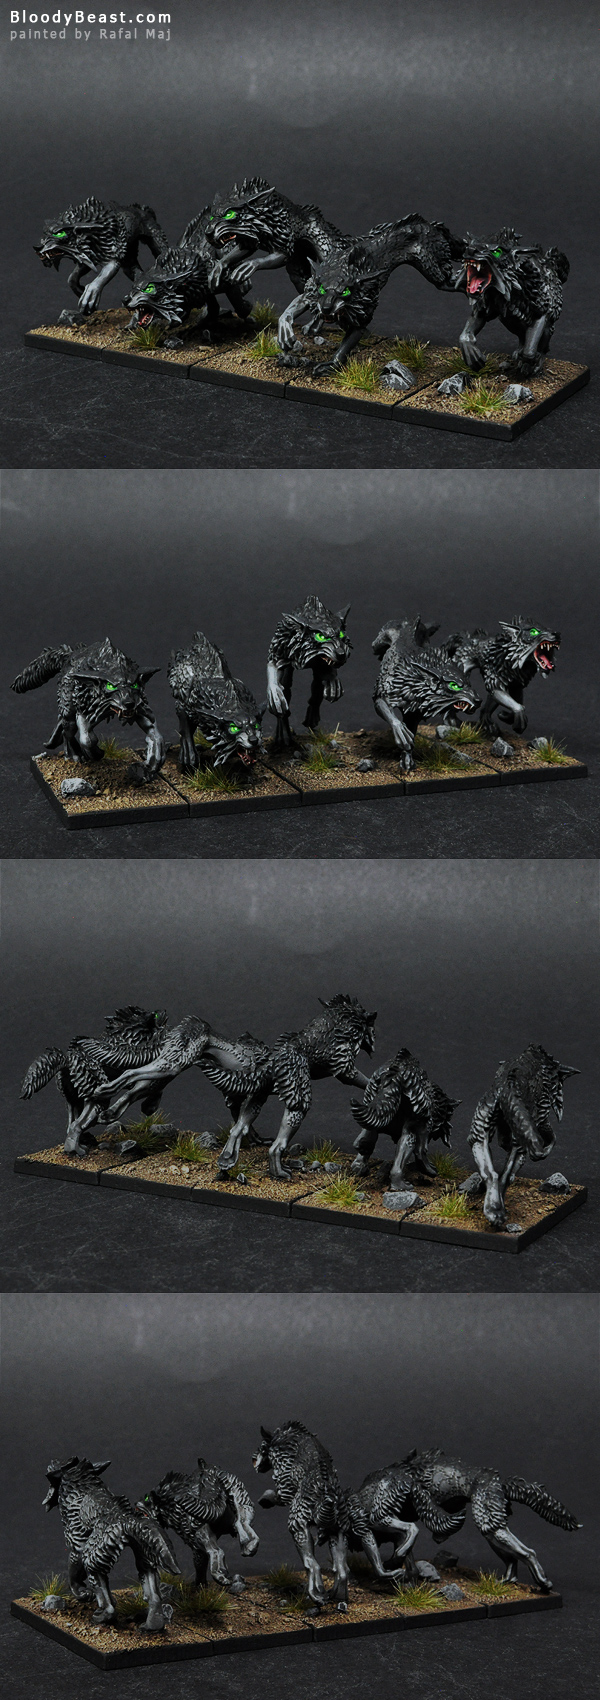 Black Wolves painted by Rafal Maj (BloodyBeast.com)